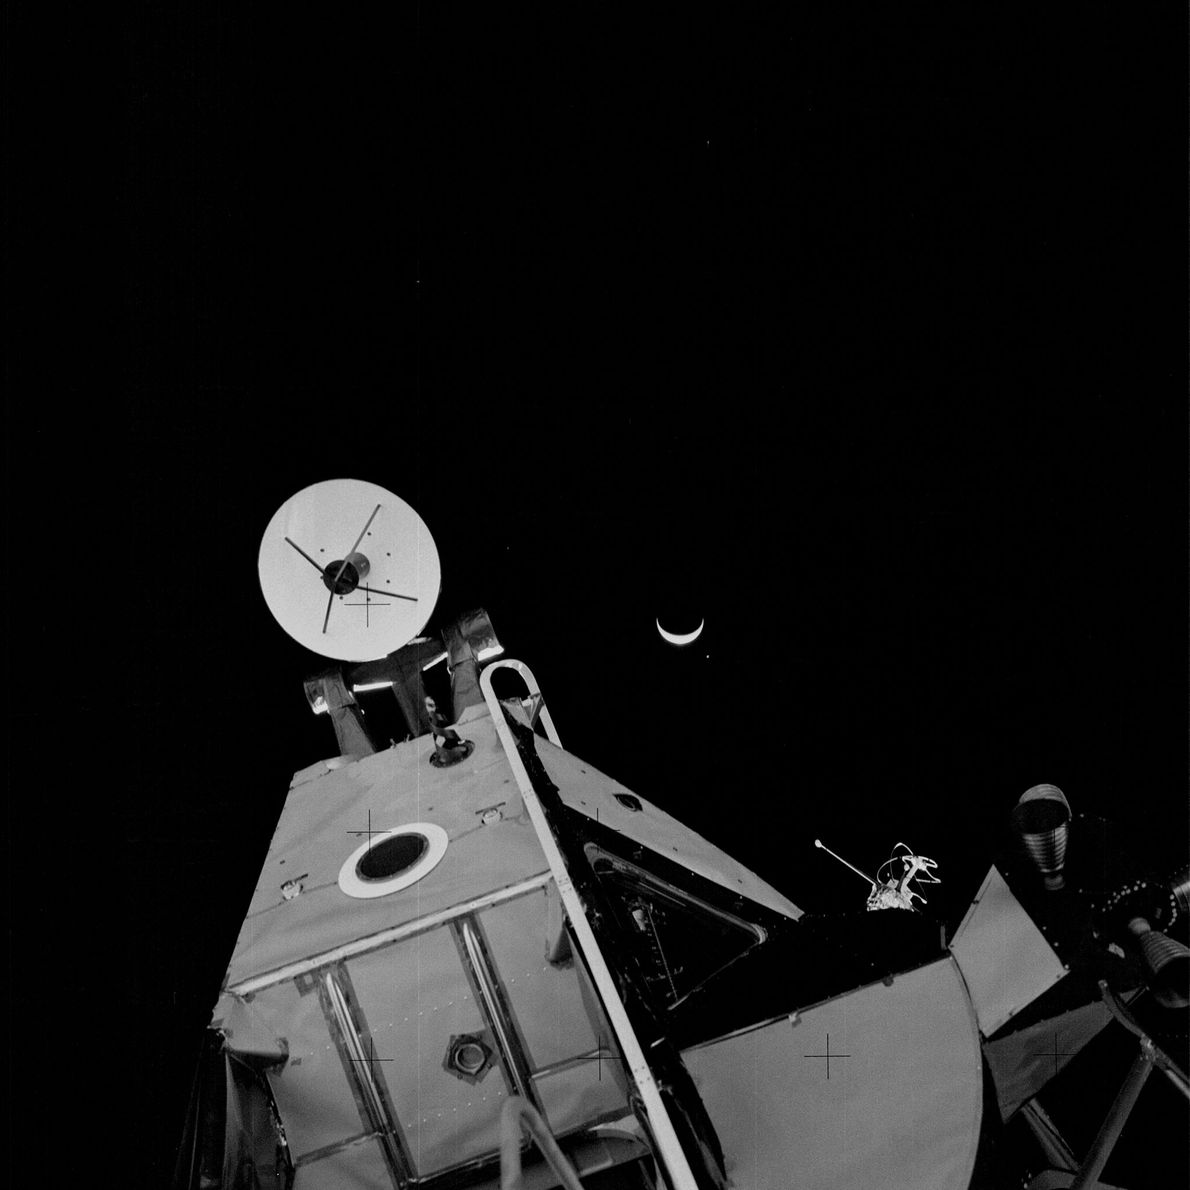 Earth, partially obscured in shadow, behind Apollo 14's lunar module.